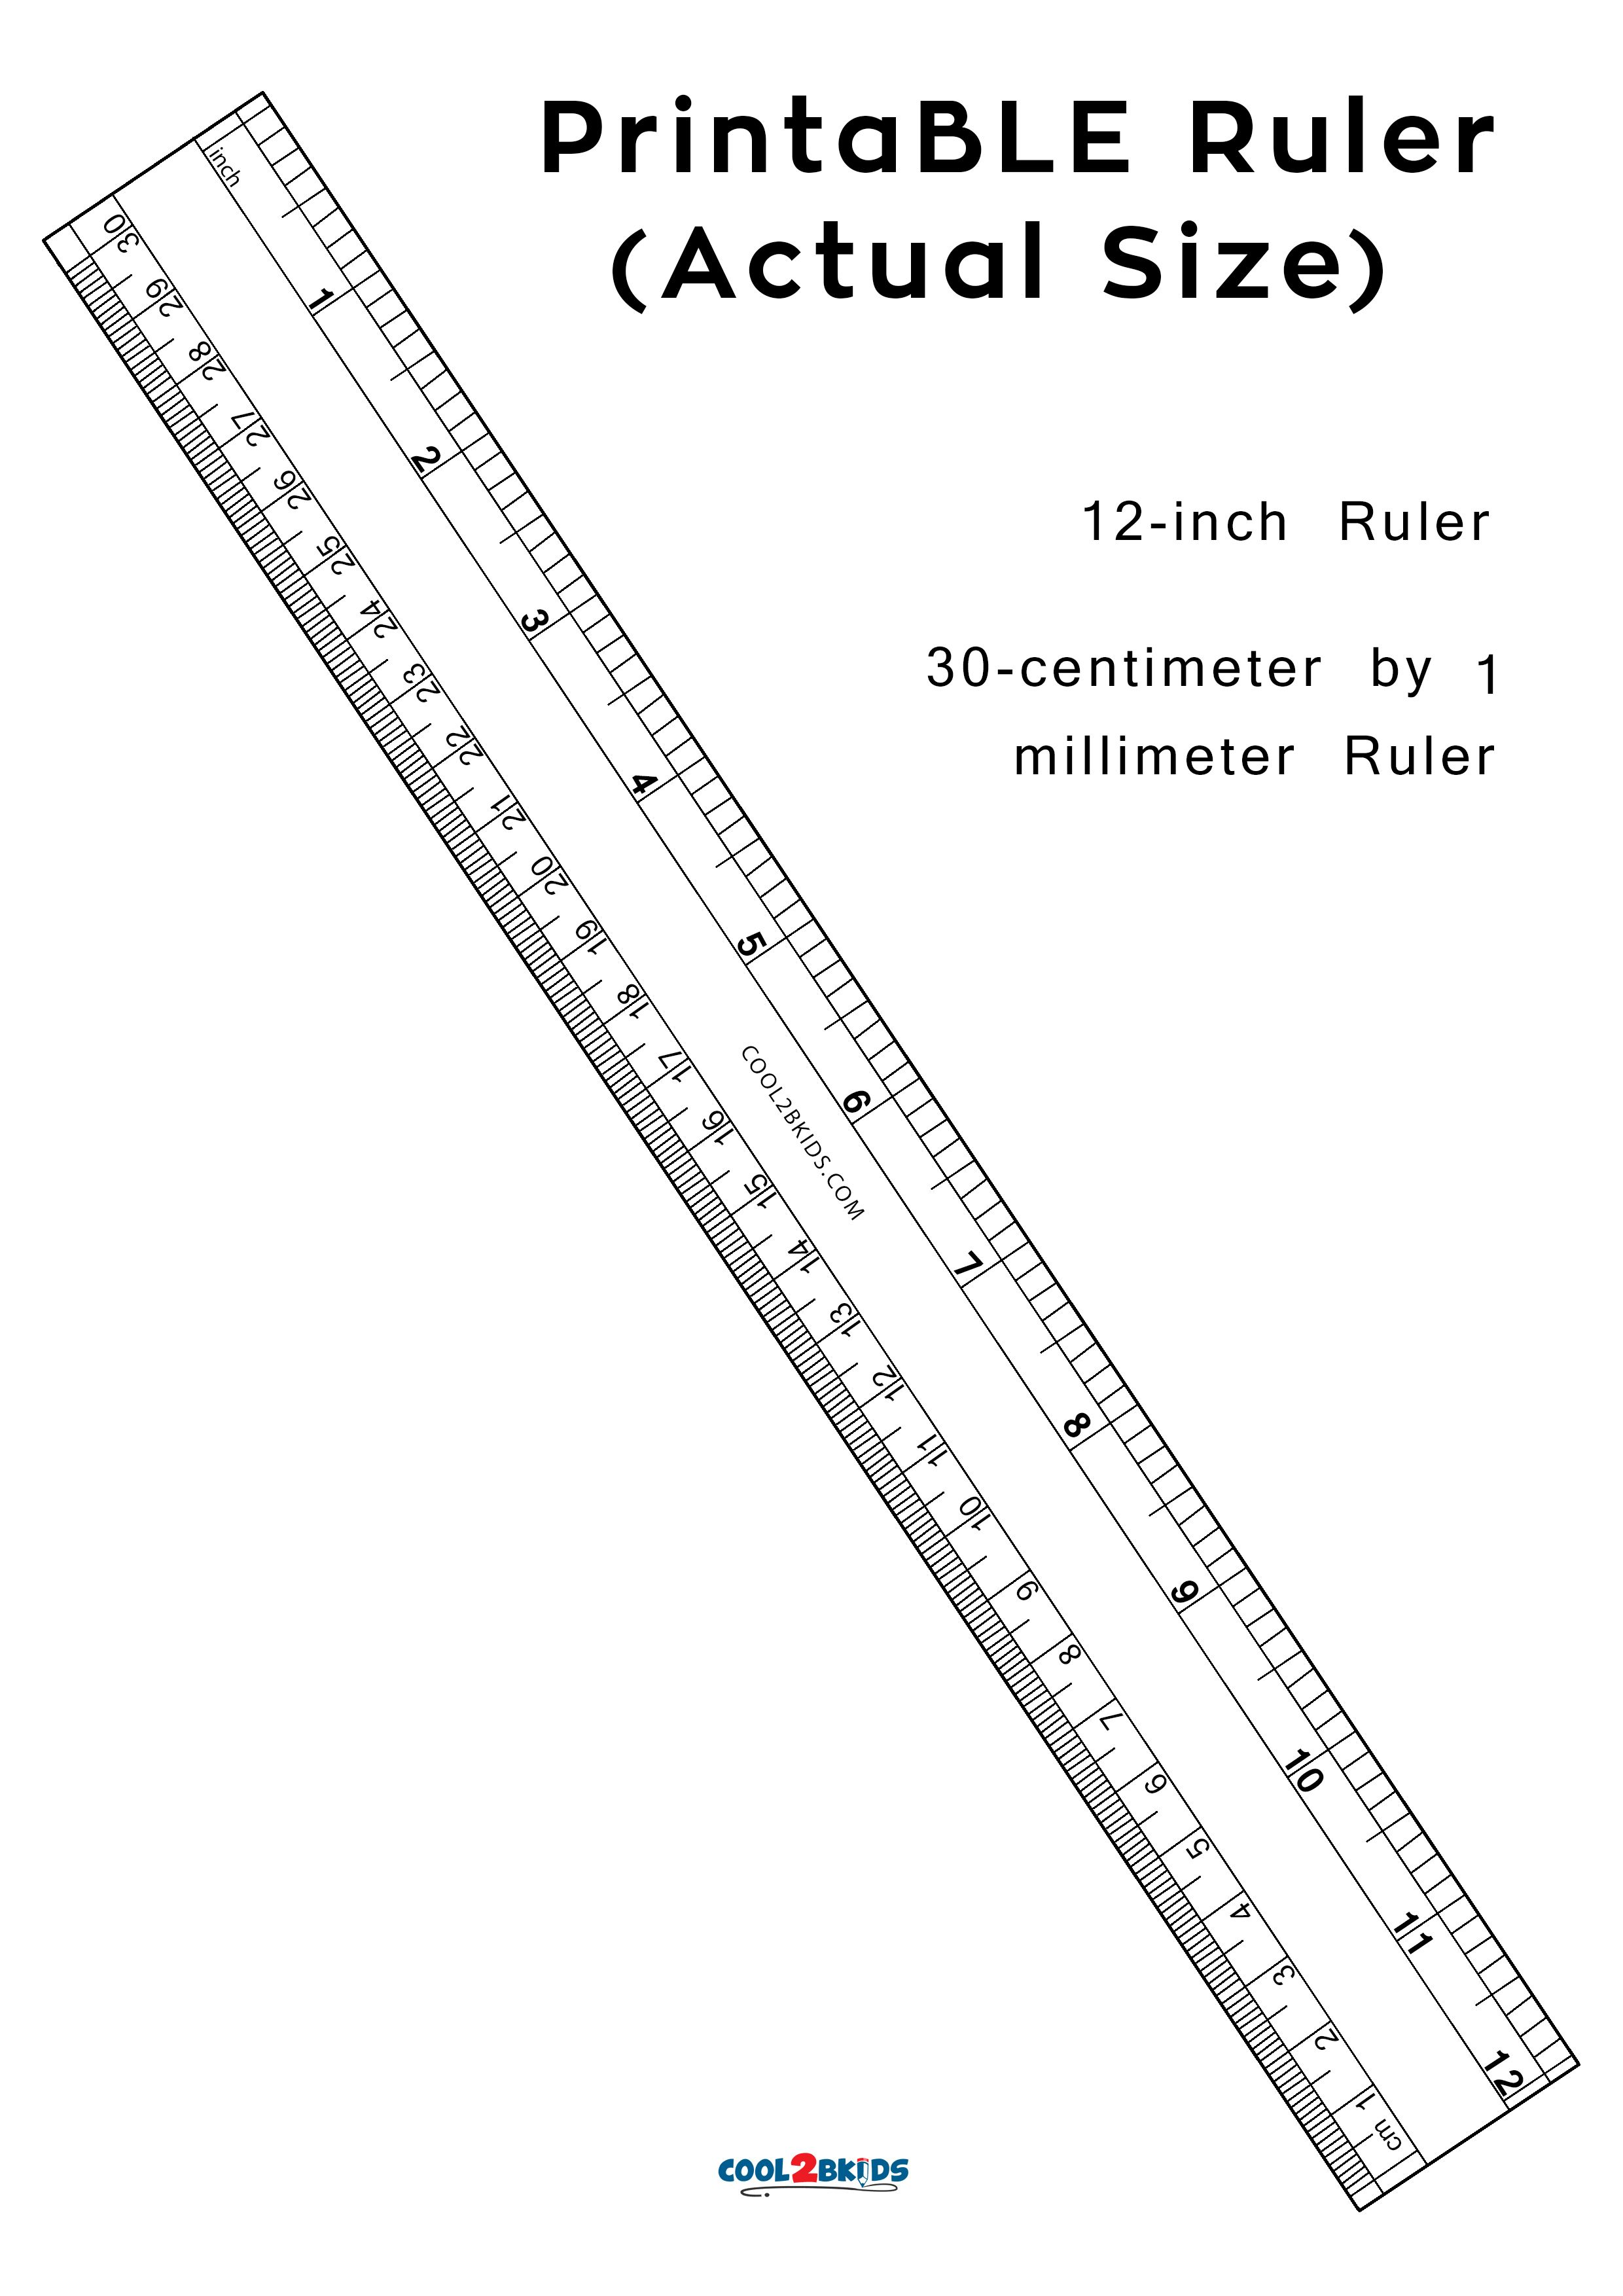 Printable 12 Inch Ruler For Actual Size Measurements